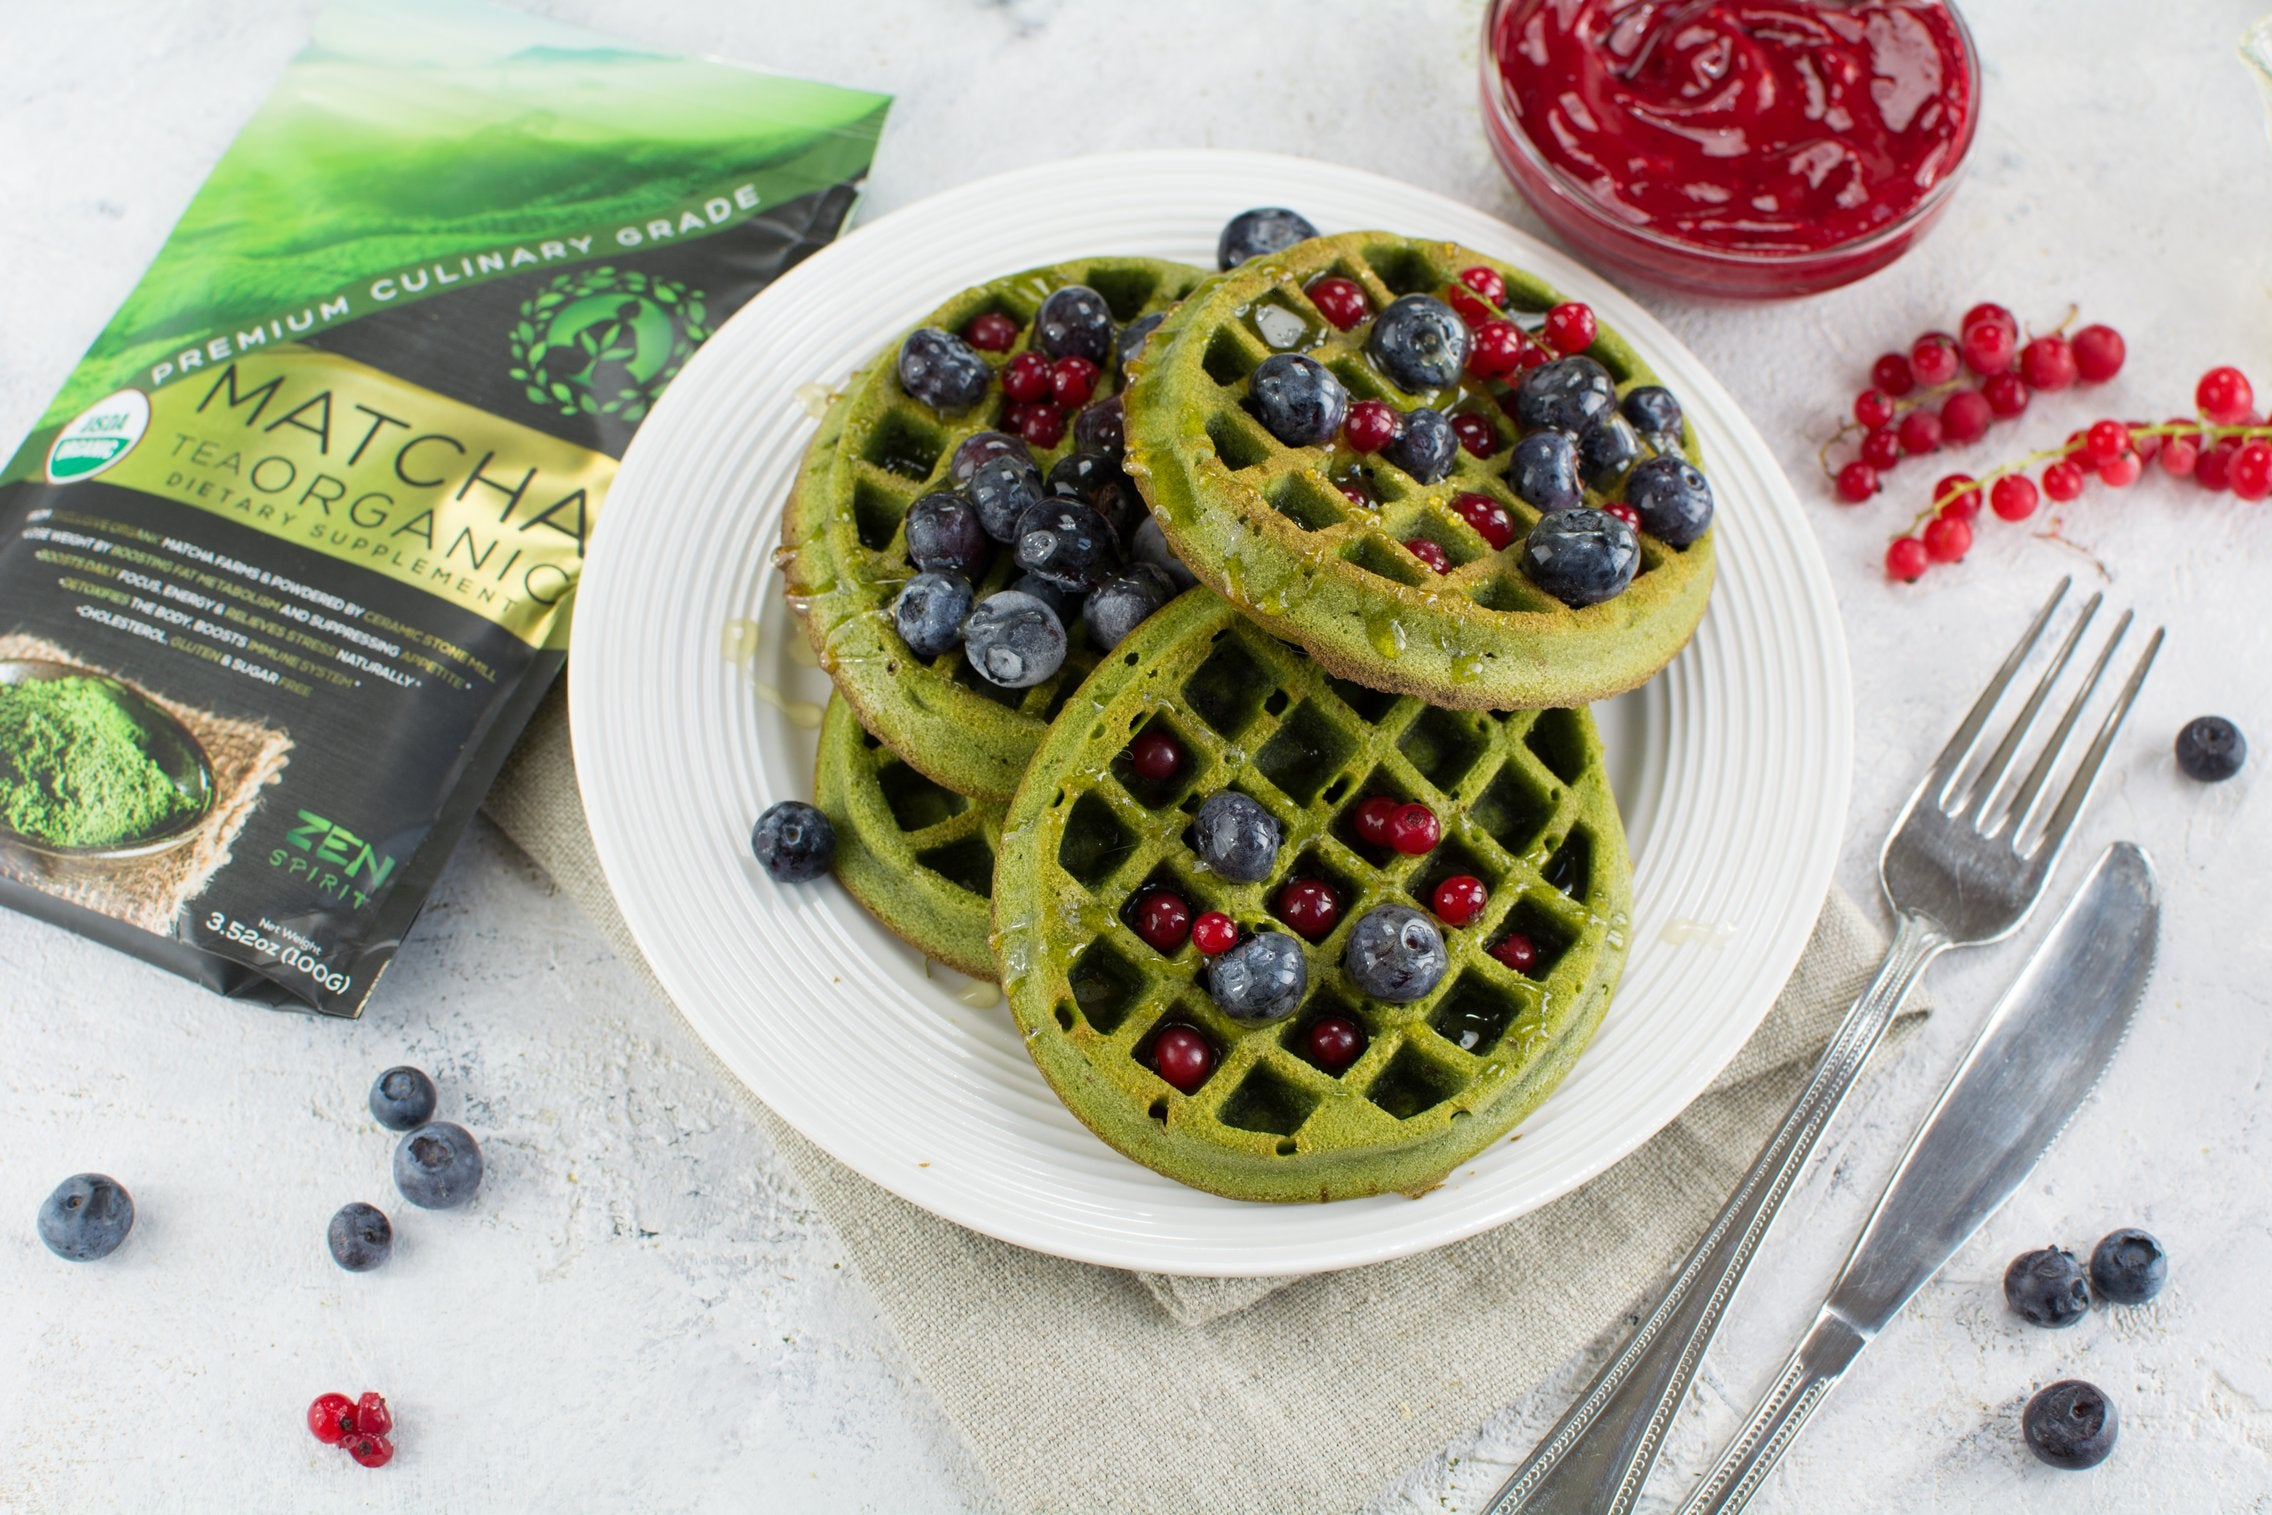 Baked Matcha Waffles final product